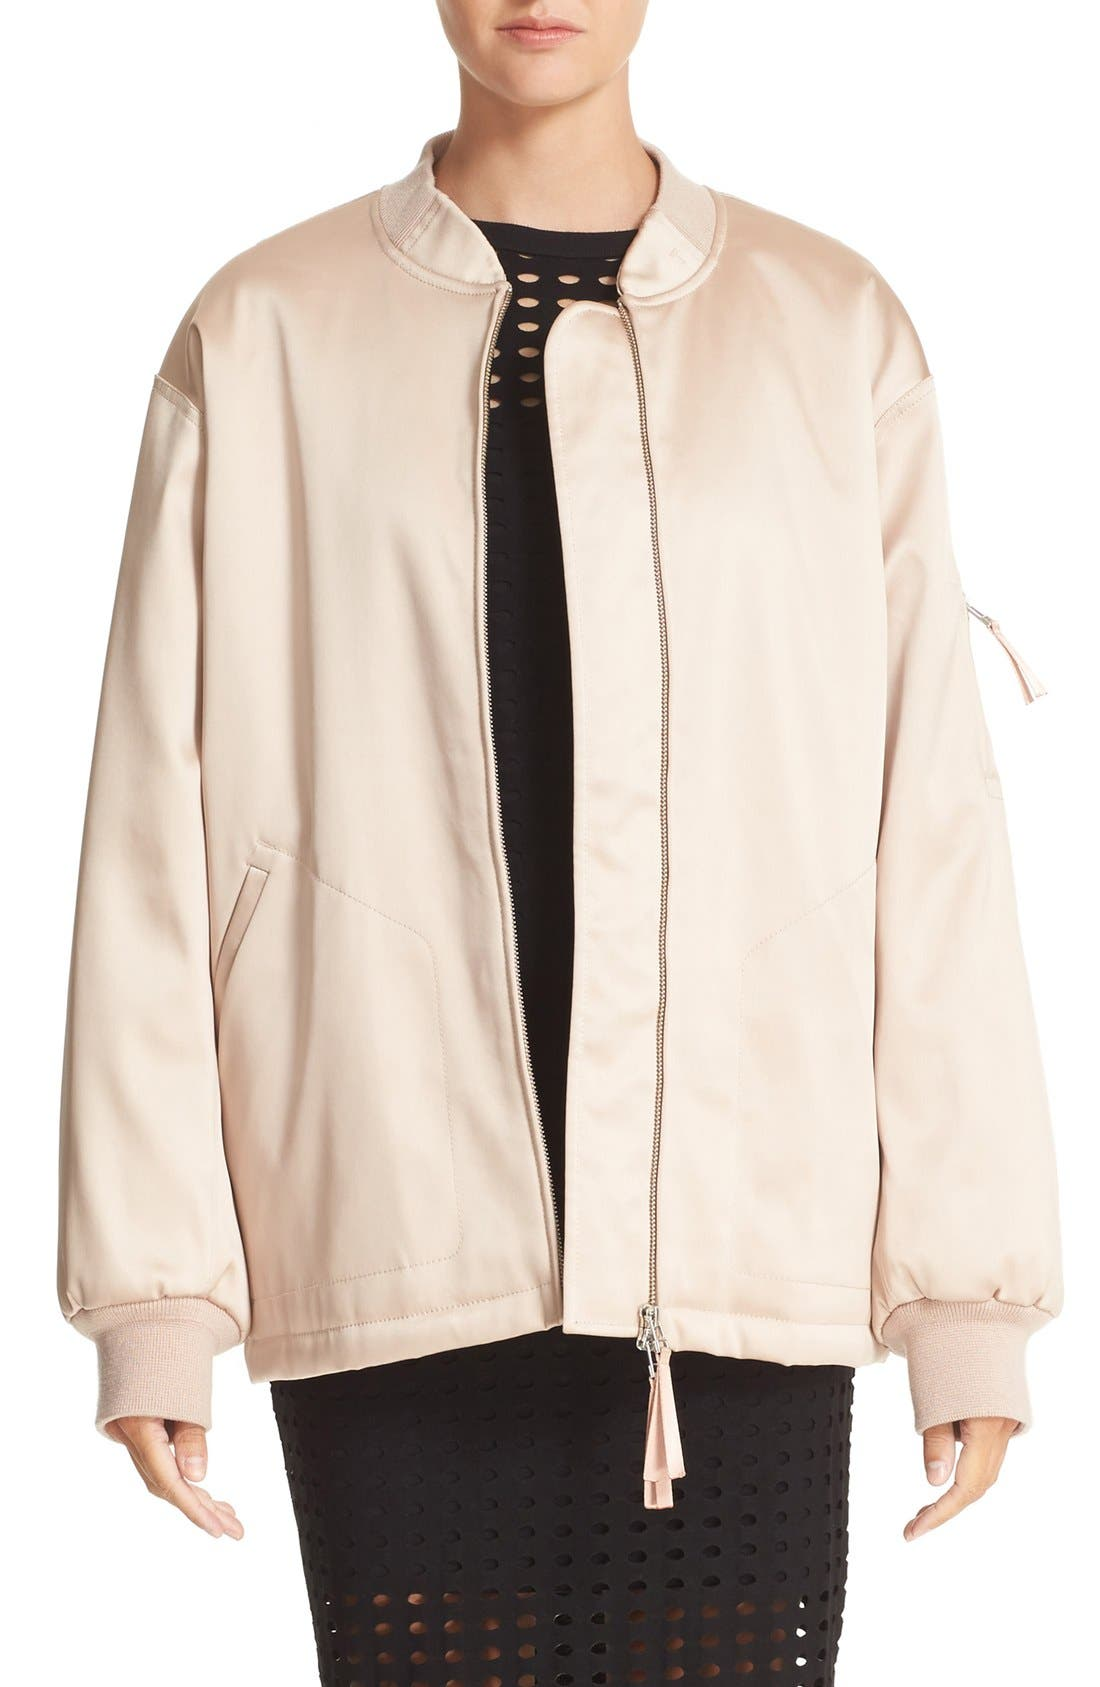 Alternate Image 1 Selected - T by Alexander Wang Satin Bomber